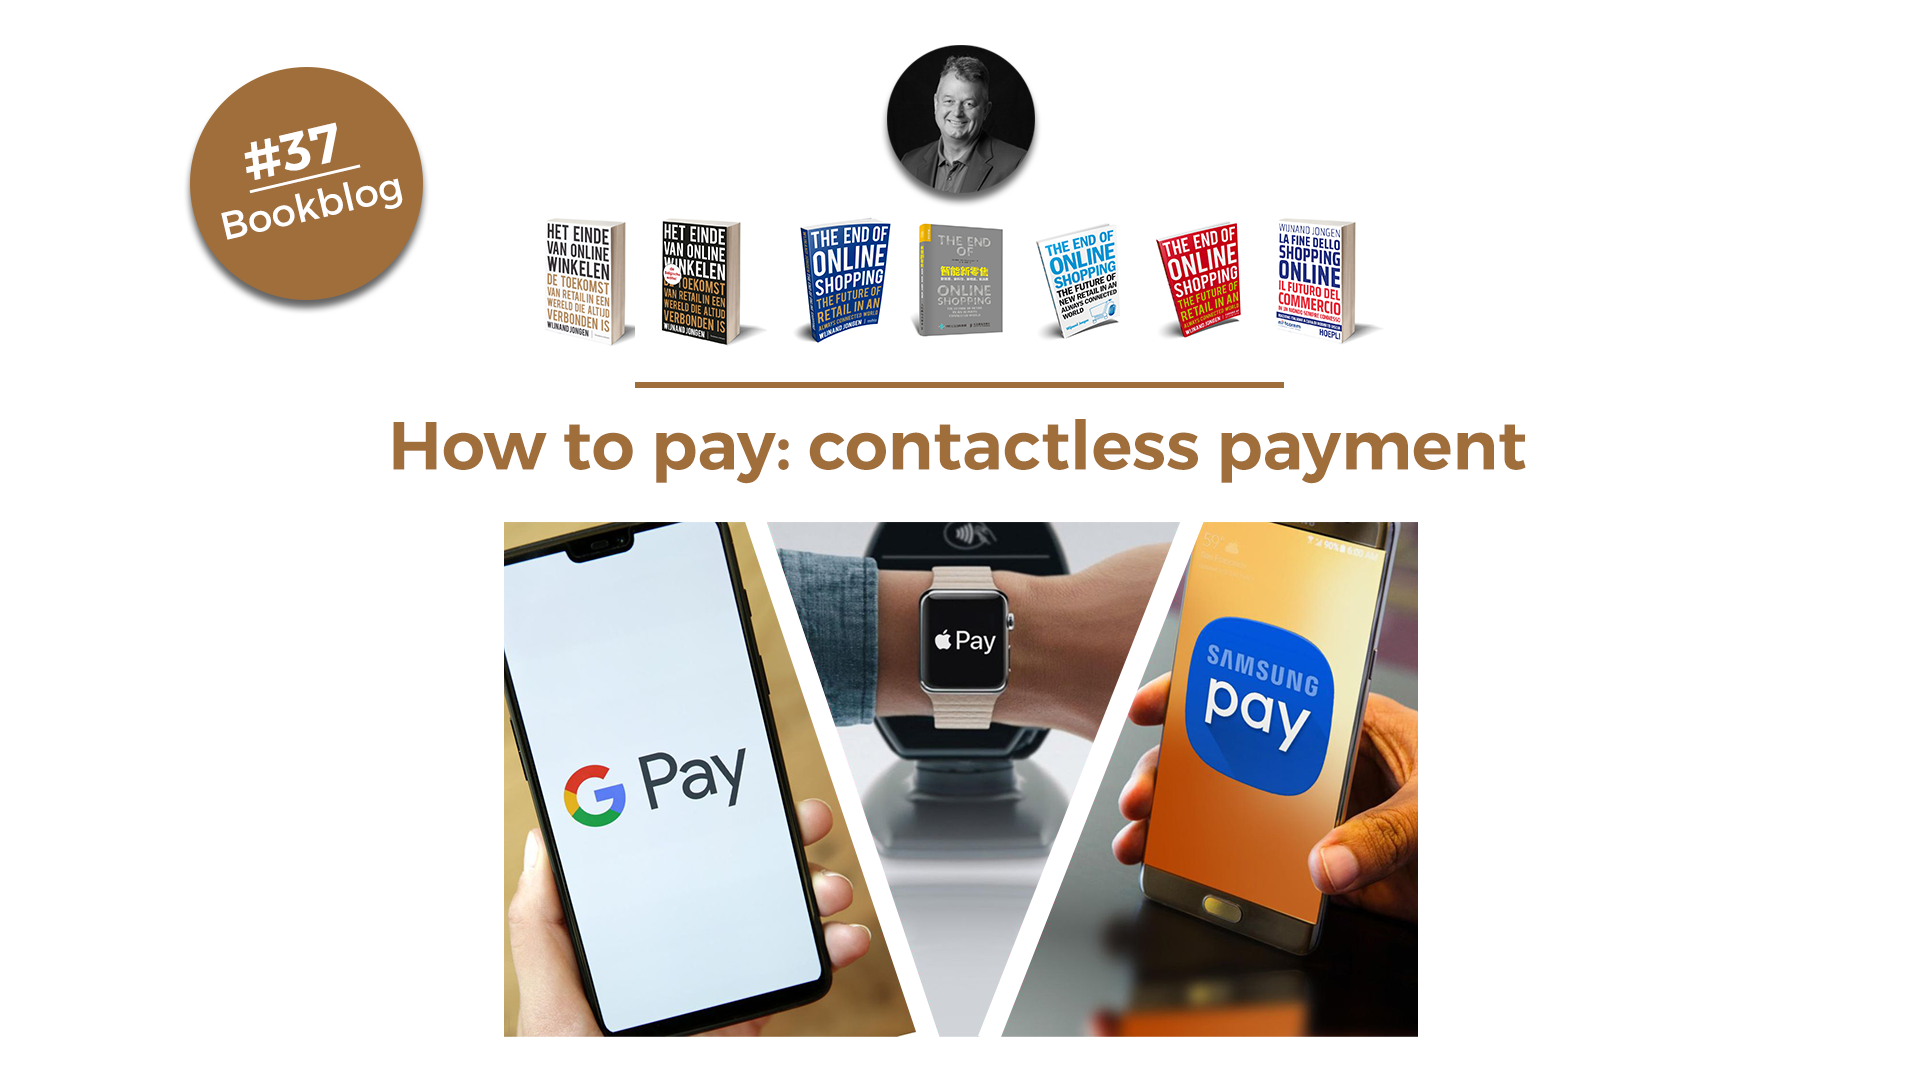 How to pay: contactless payment